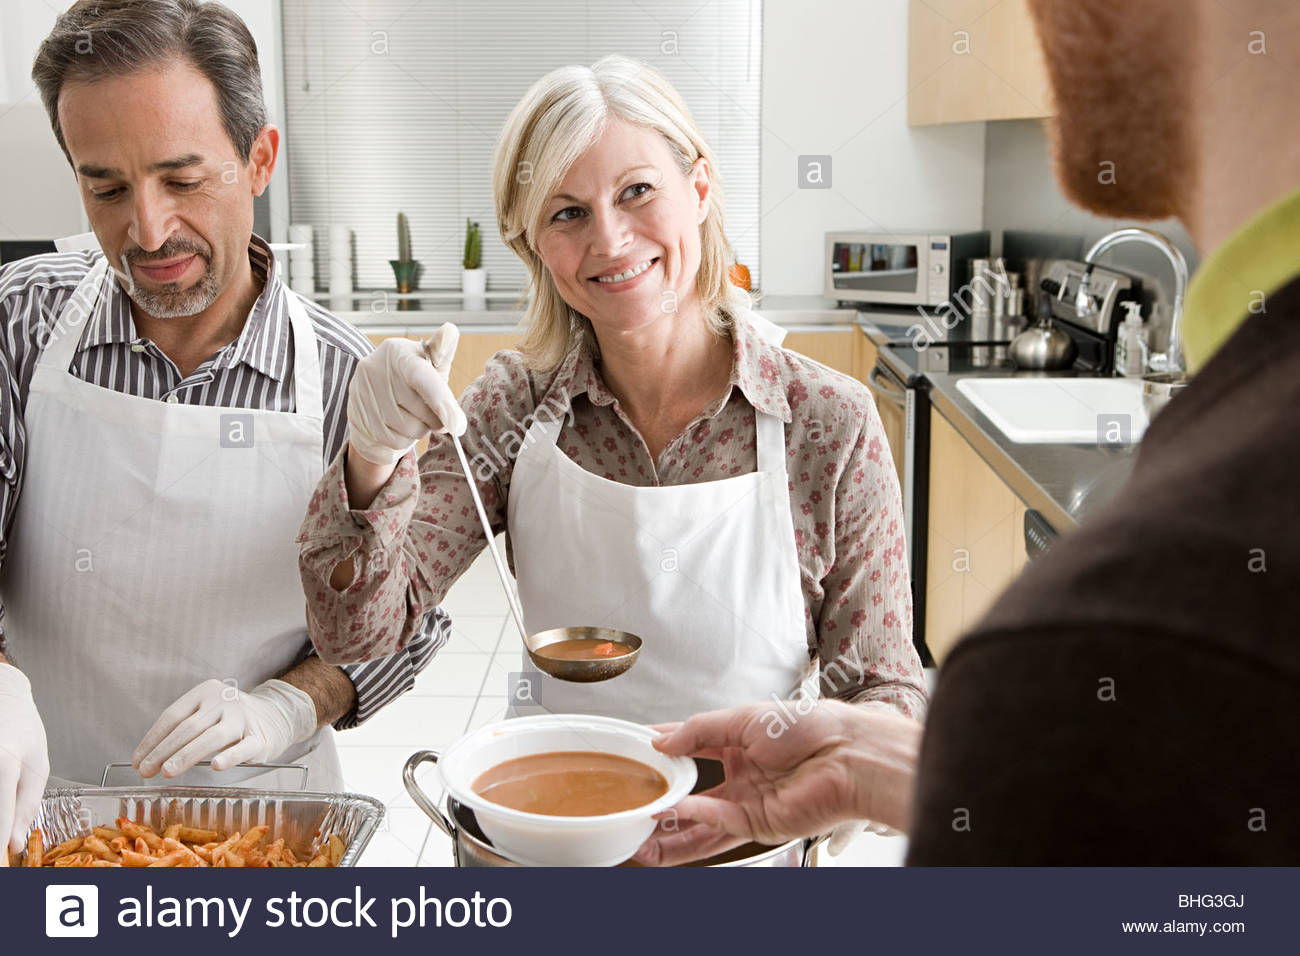 People Volunteering At Soup Kitchen Stock Photo: 28013570 ...